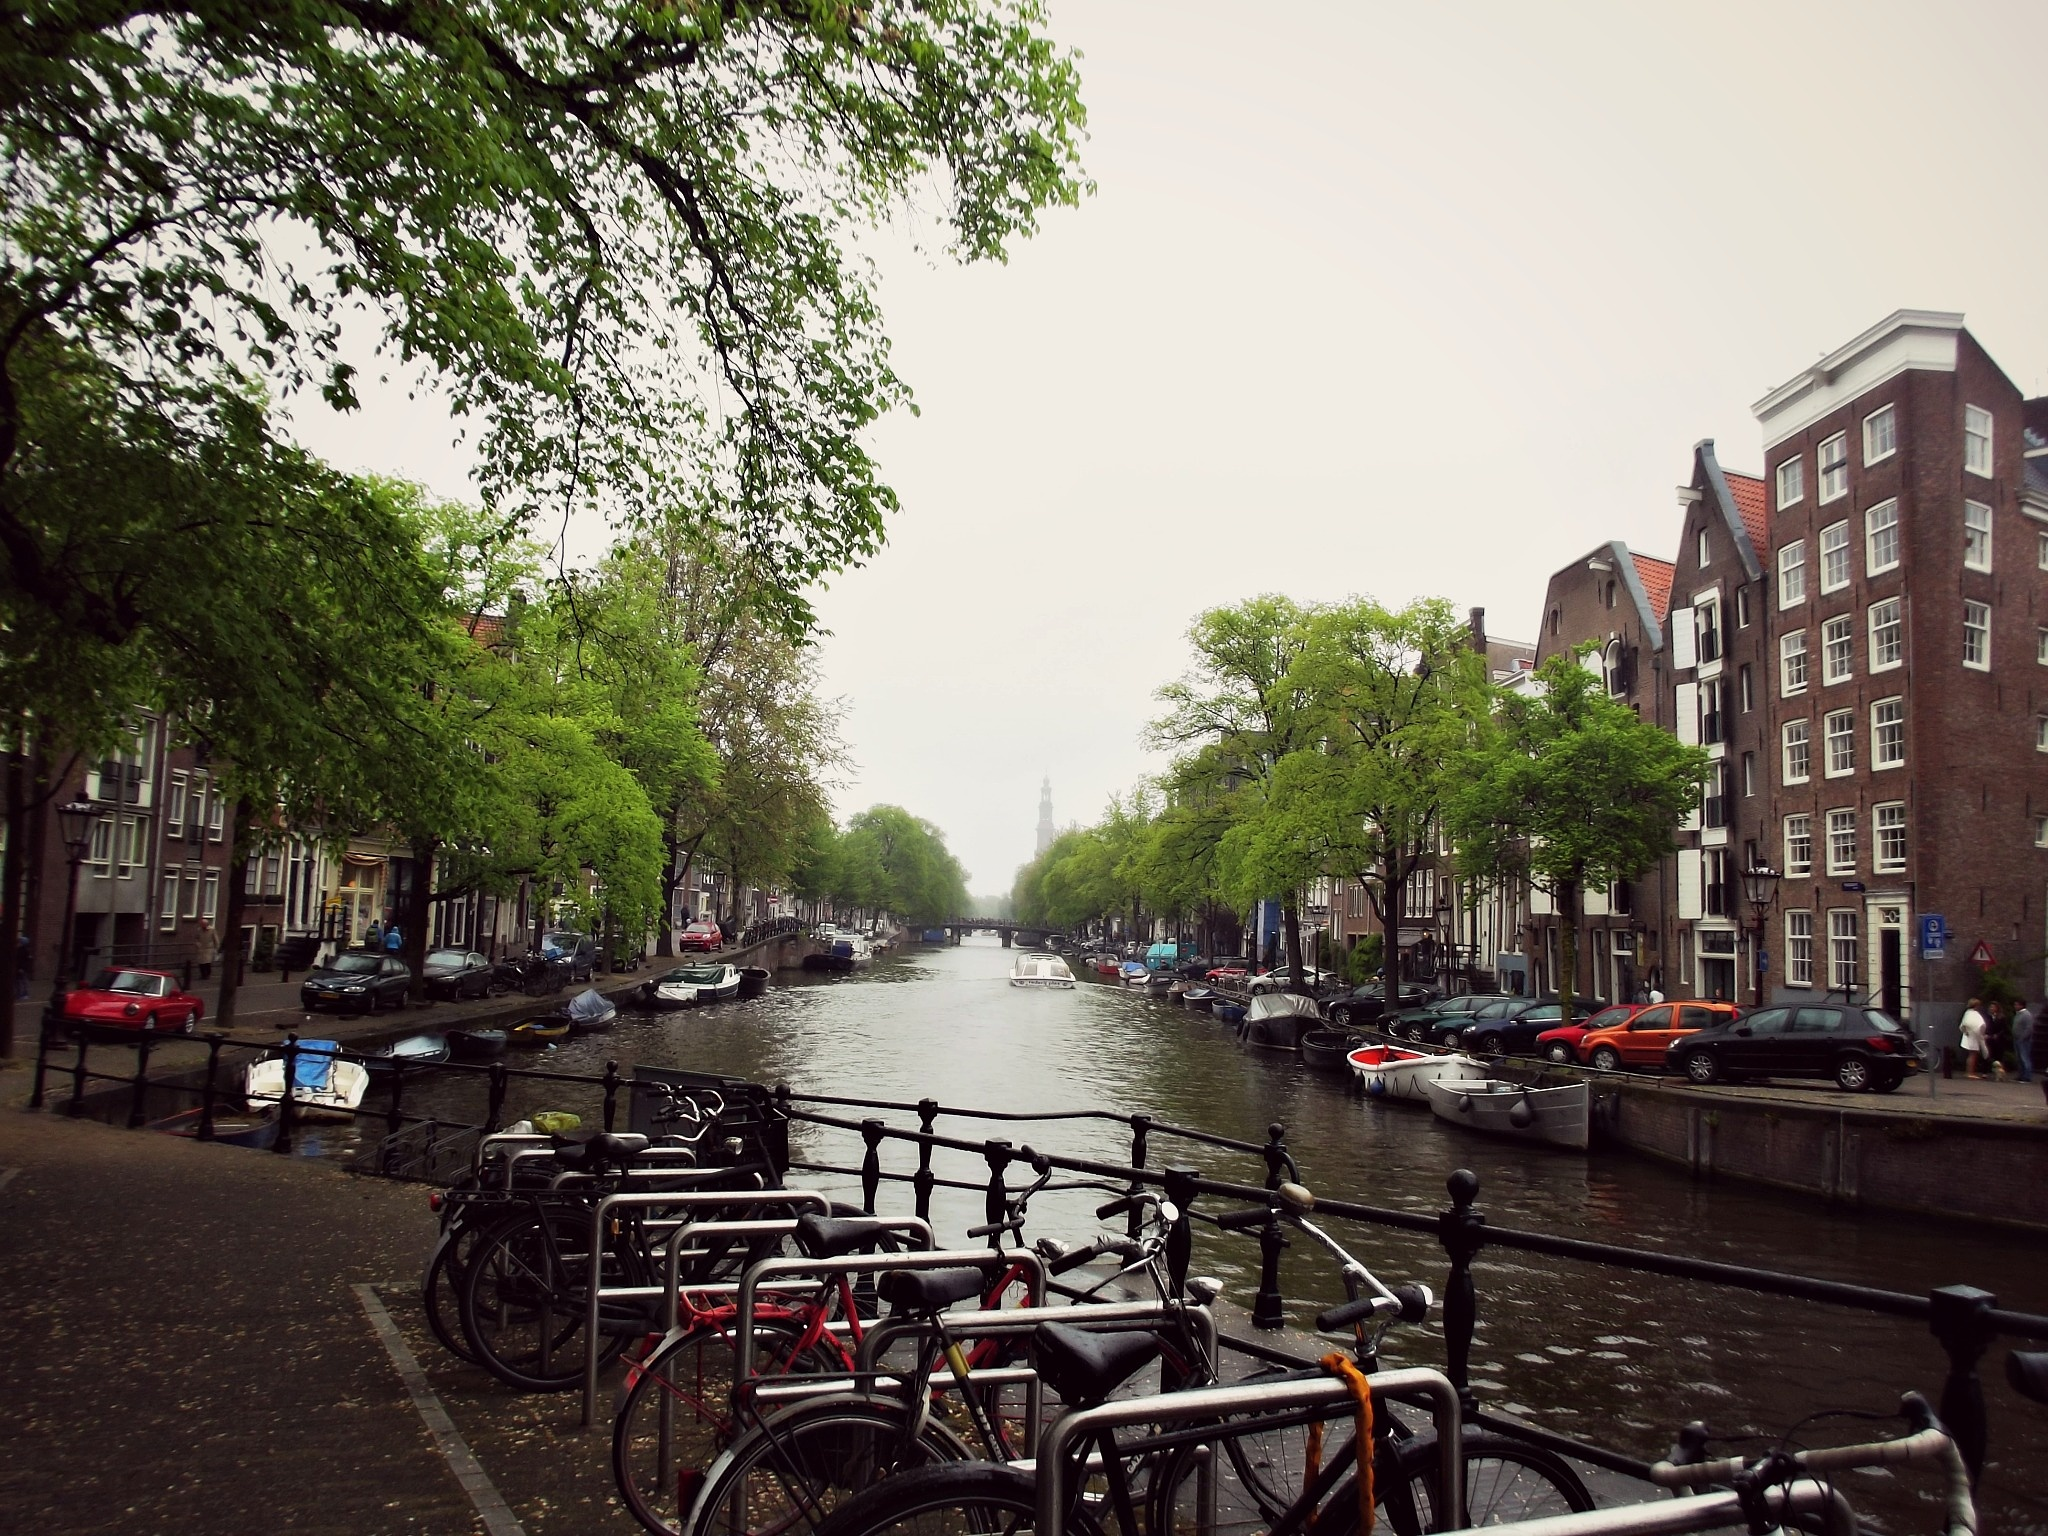 The Water-ways of Amsterdam by Melissa Berro